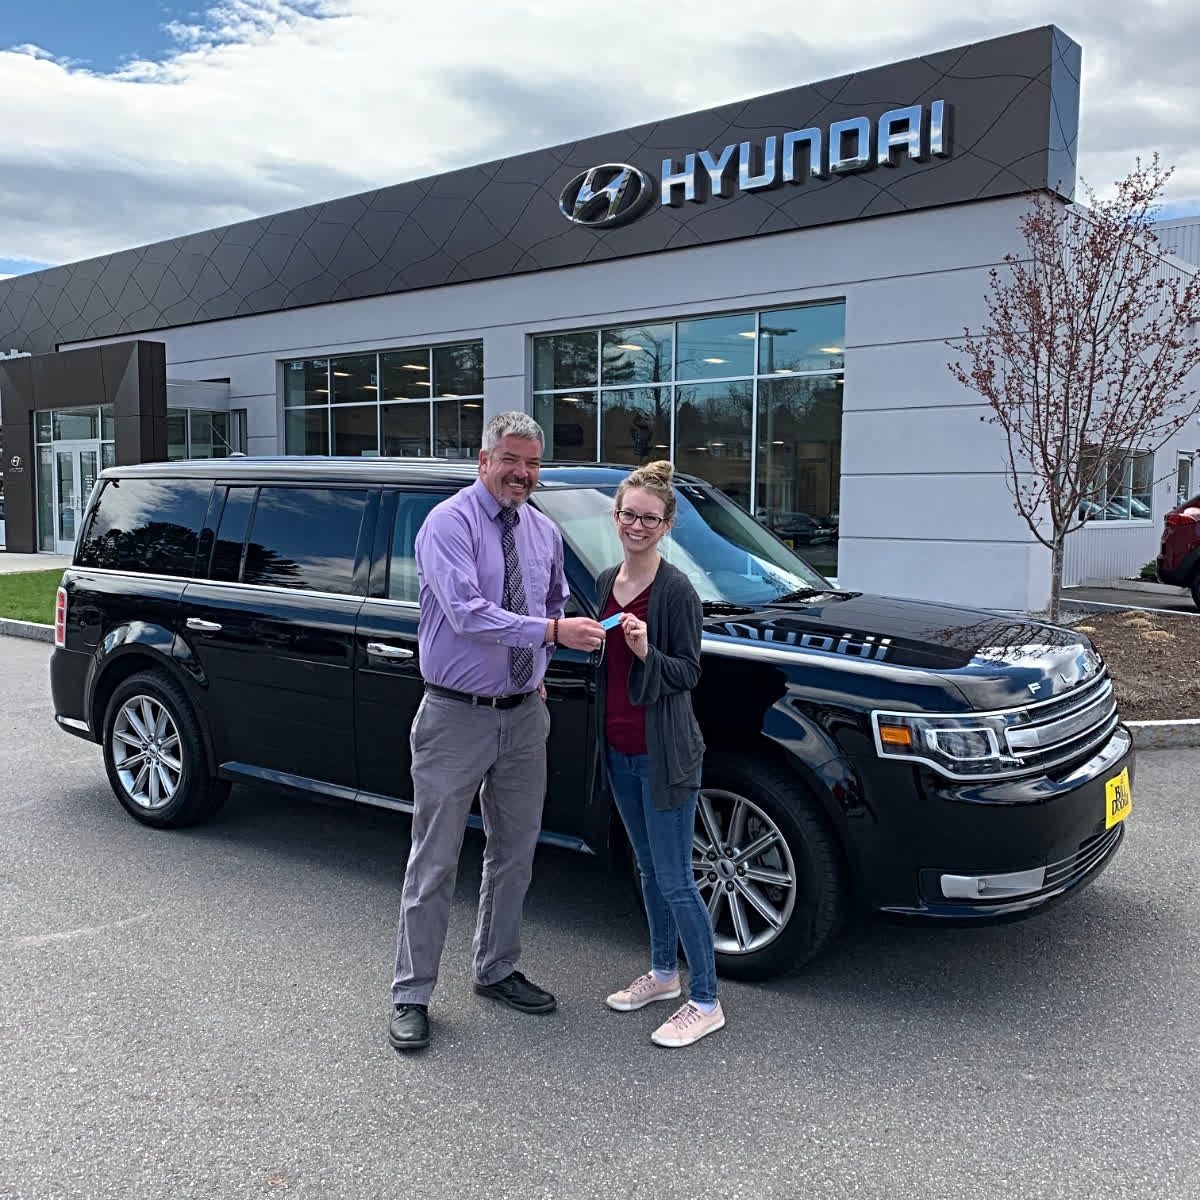 Congrats To Kyley For The Purchase Of This Beautiful Pre Owned 2018 Ford Flex Seth Spencer And The Rest Of The Team Had A Blast Wor Ford Flex Hyundai Ford